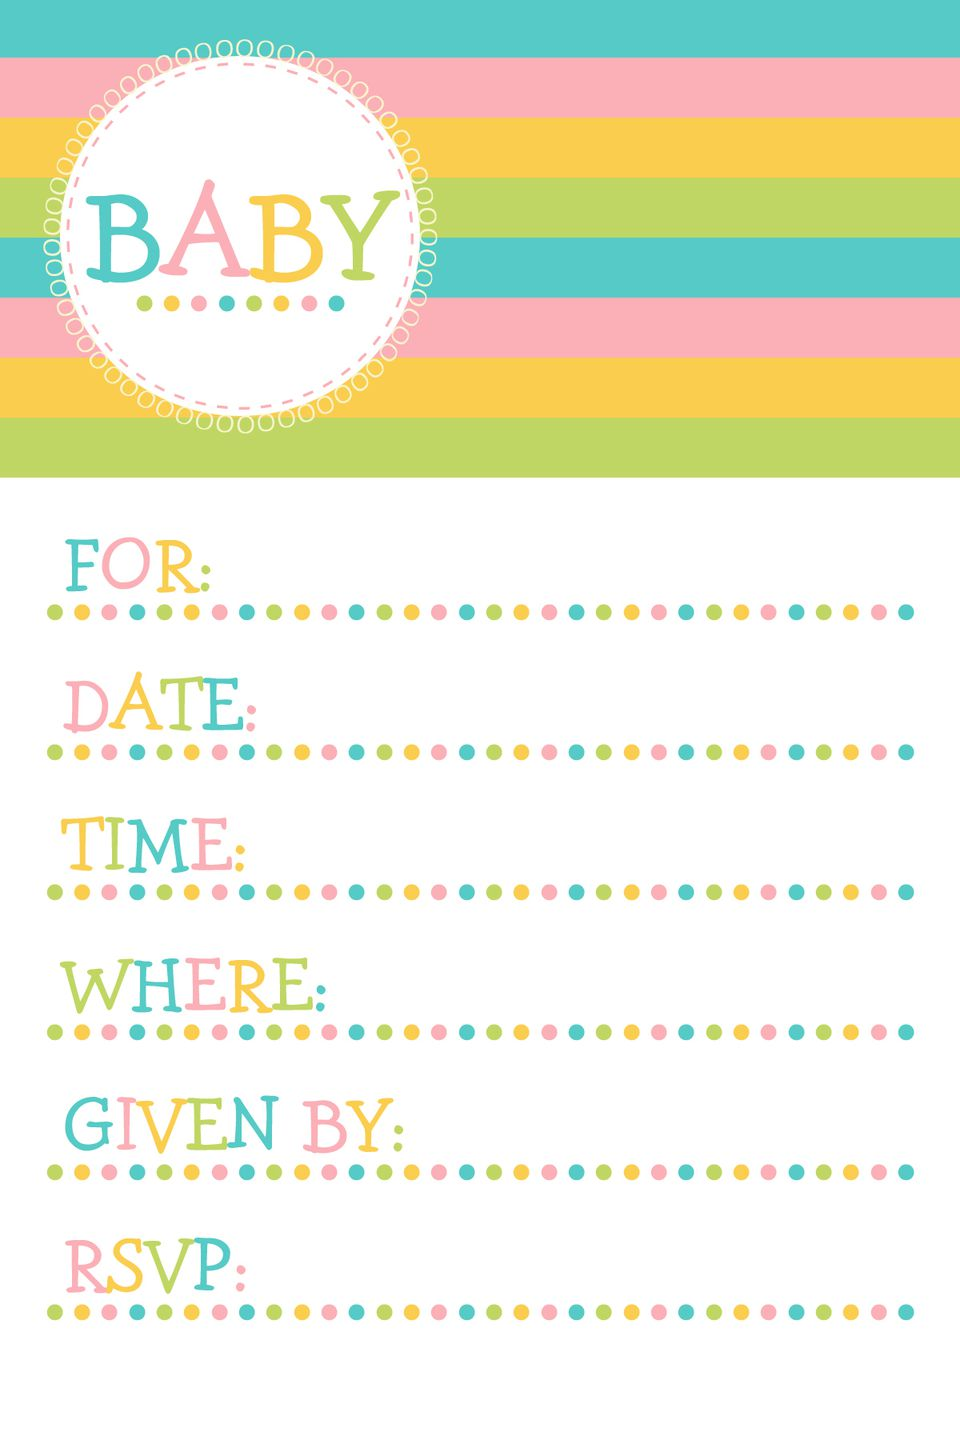 Full Size of Baby Shower:baby Shower Invitations For Boys Homemade Baby Shower Decorations Baby Shower Ideas Nursery Themes For Girls Elegant Baby Shower All Star Baby Shower Unique Baby Shower Decorations Girl Baby Shower Decorations